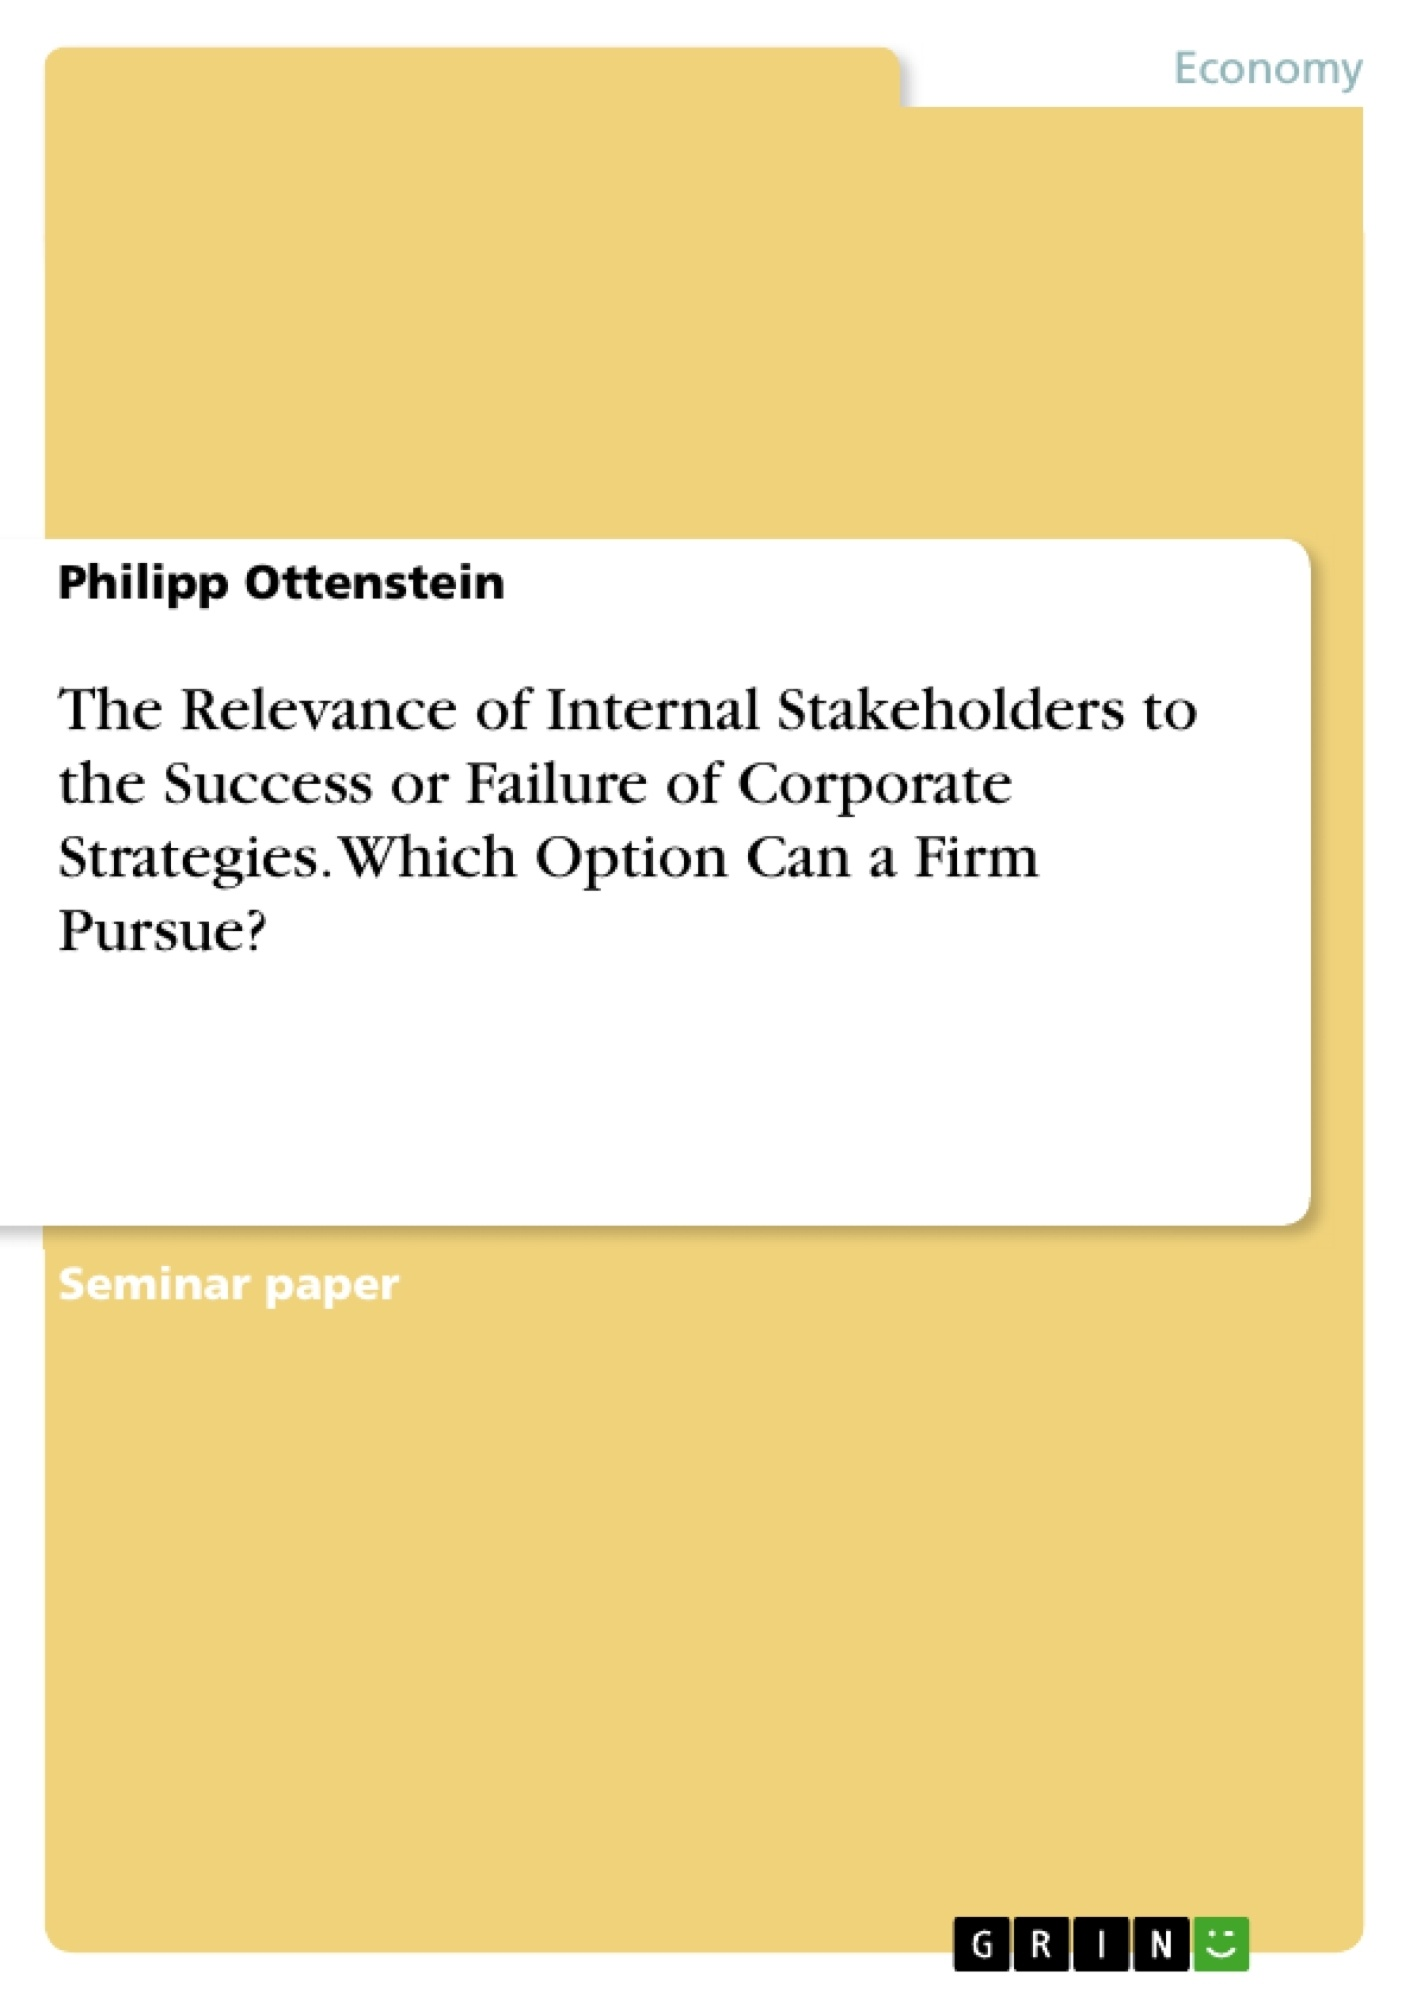 Title: The Relevance of Internal Stakeholders to the Success or Failure of Corporate Strategies. Which Option Can a Firm Pursue?